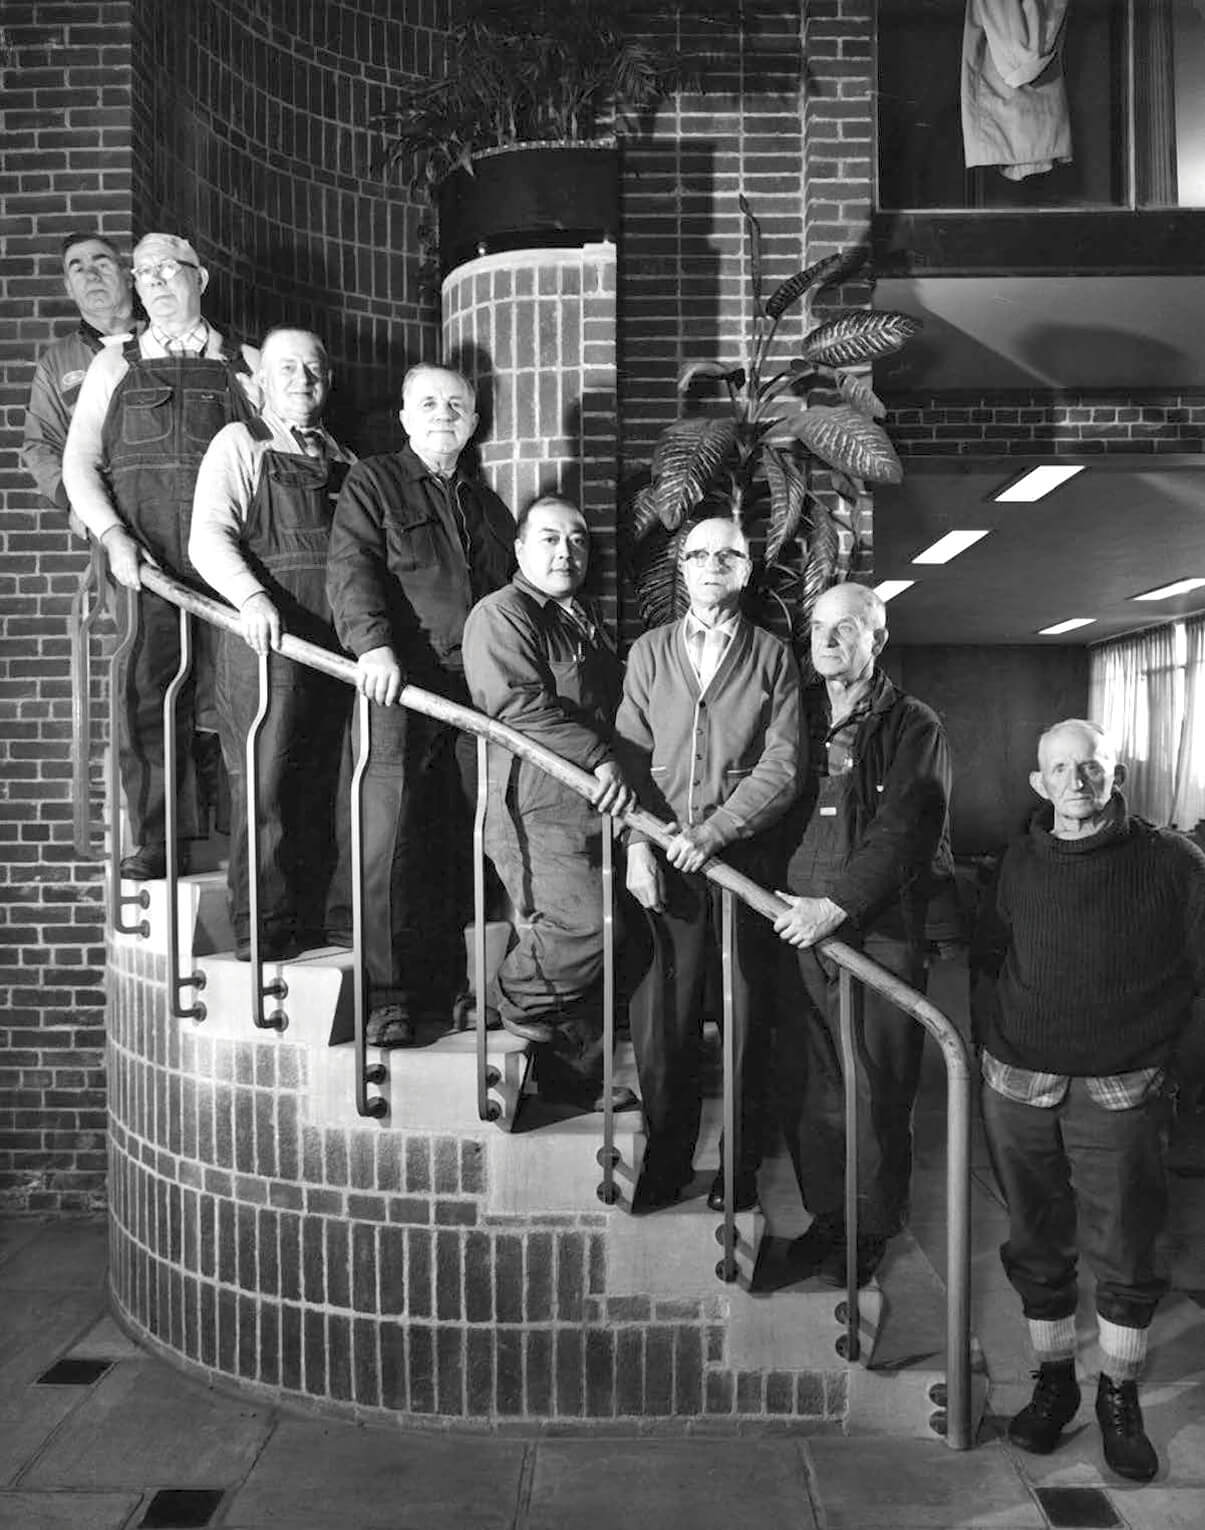 old black and white photo with a group of people on the stairs